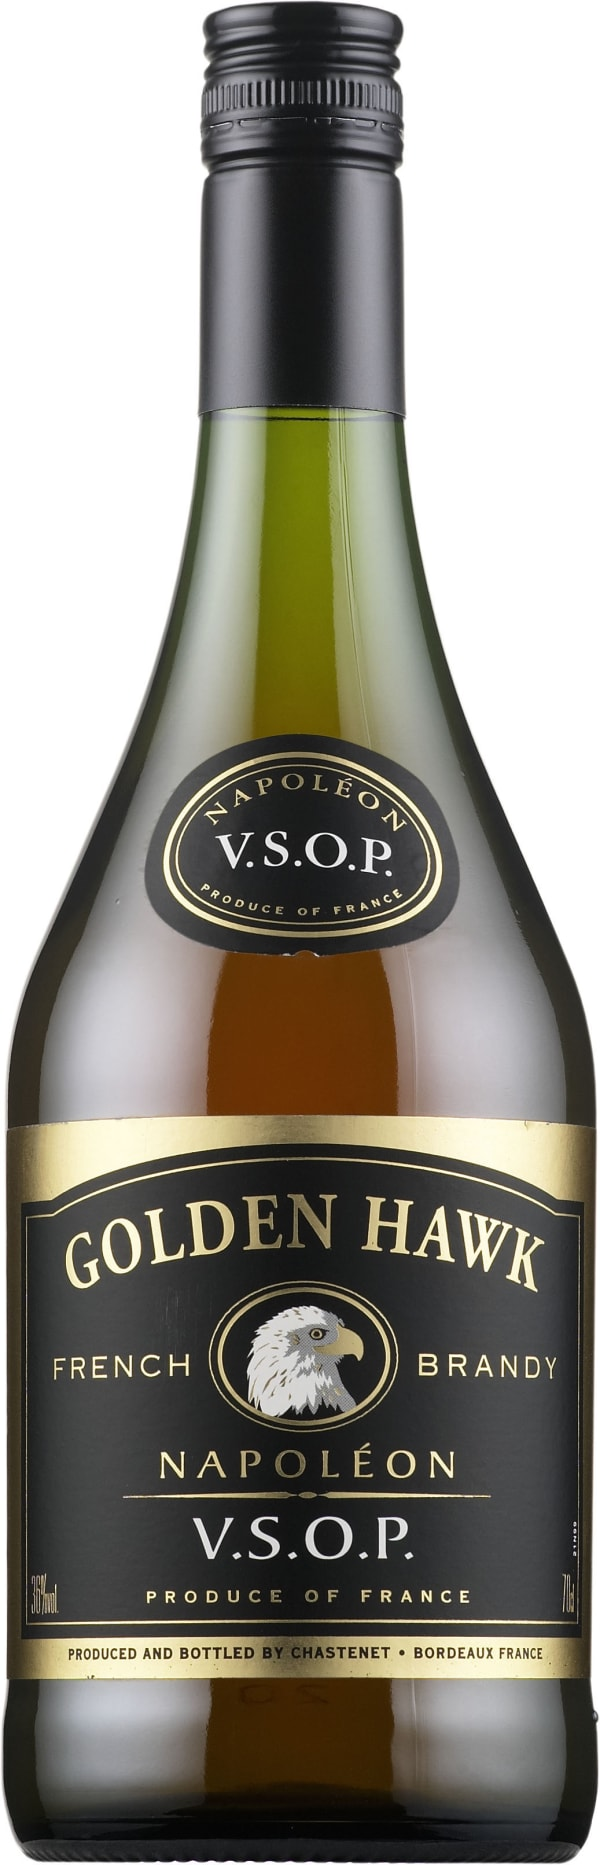 Golden Hawk Napoléon VSOP